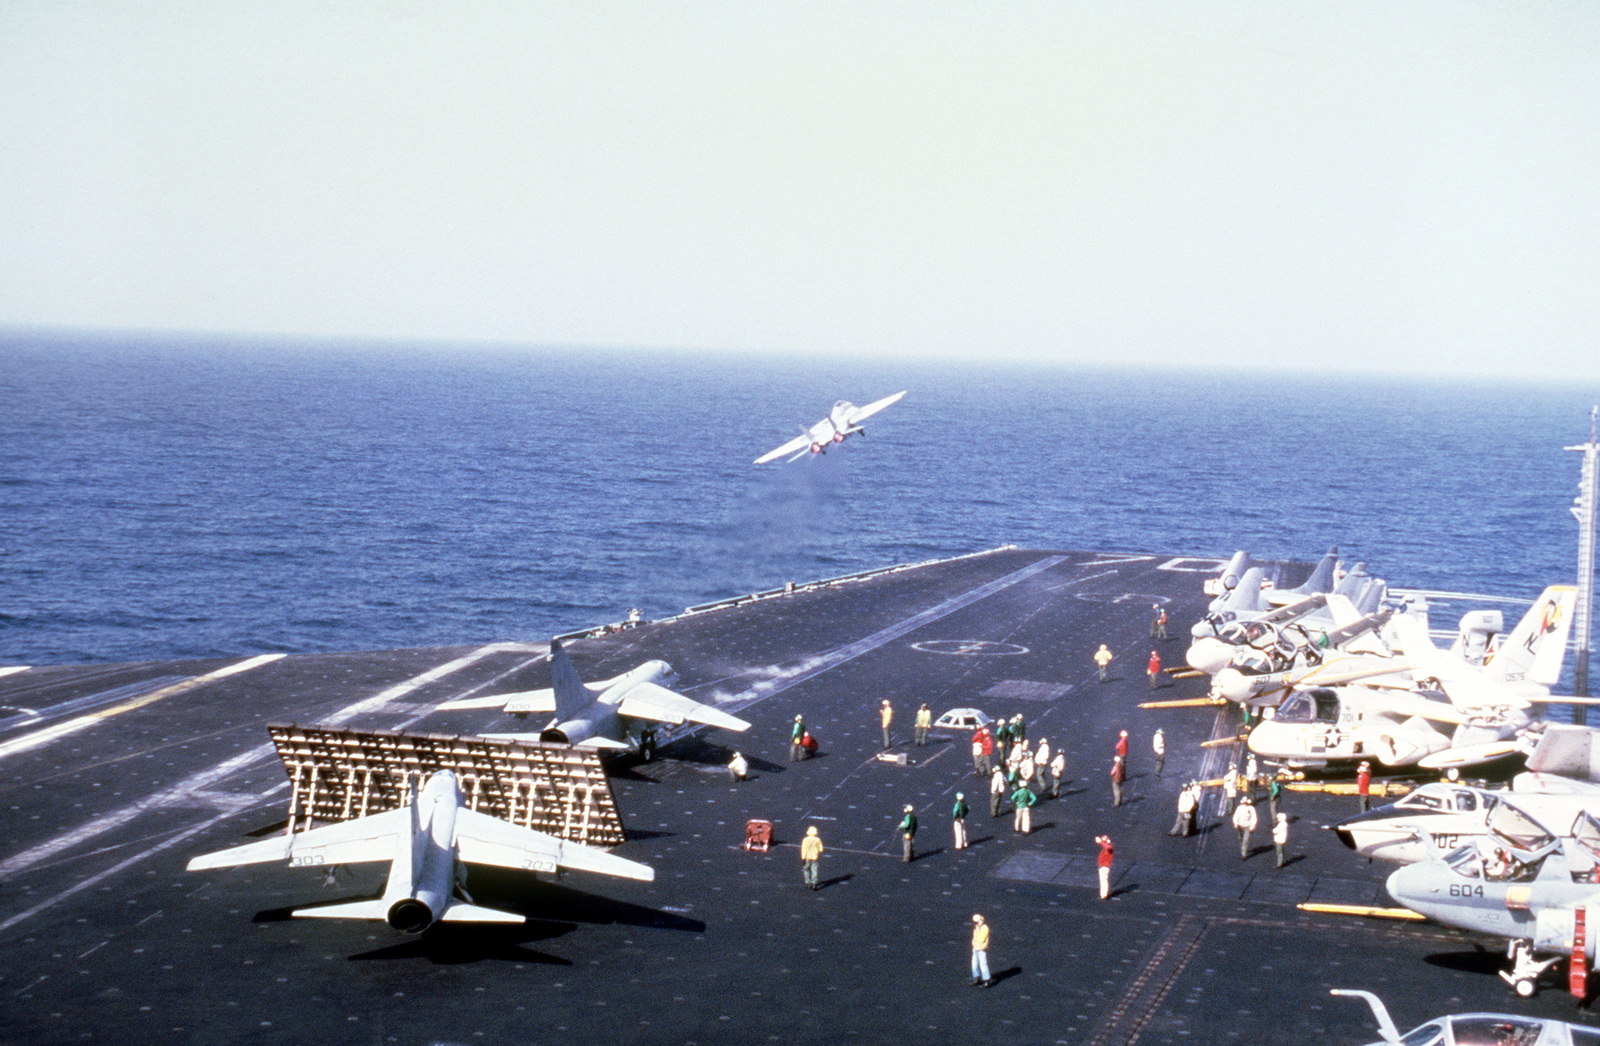 Elevated view of the flight deck aboard the nuclear-powered aircraft carrier USS CARL VINSON (CVN 70). An F-14 Tomcat has just taken off and an A-7 Corsair II aircraft is waiting for launch. Various aircraft are parked on the right